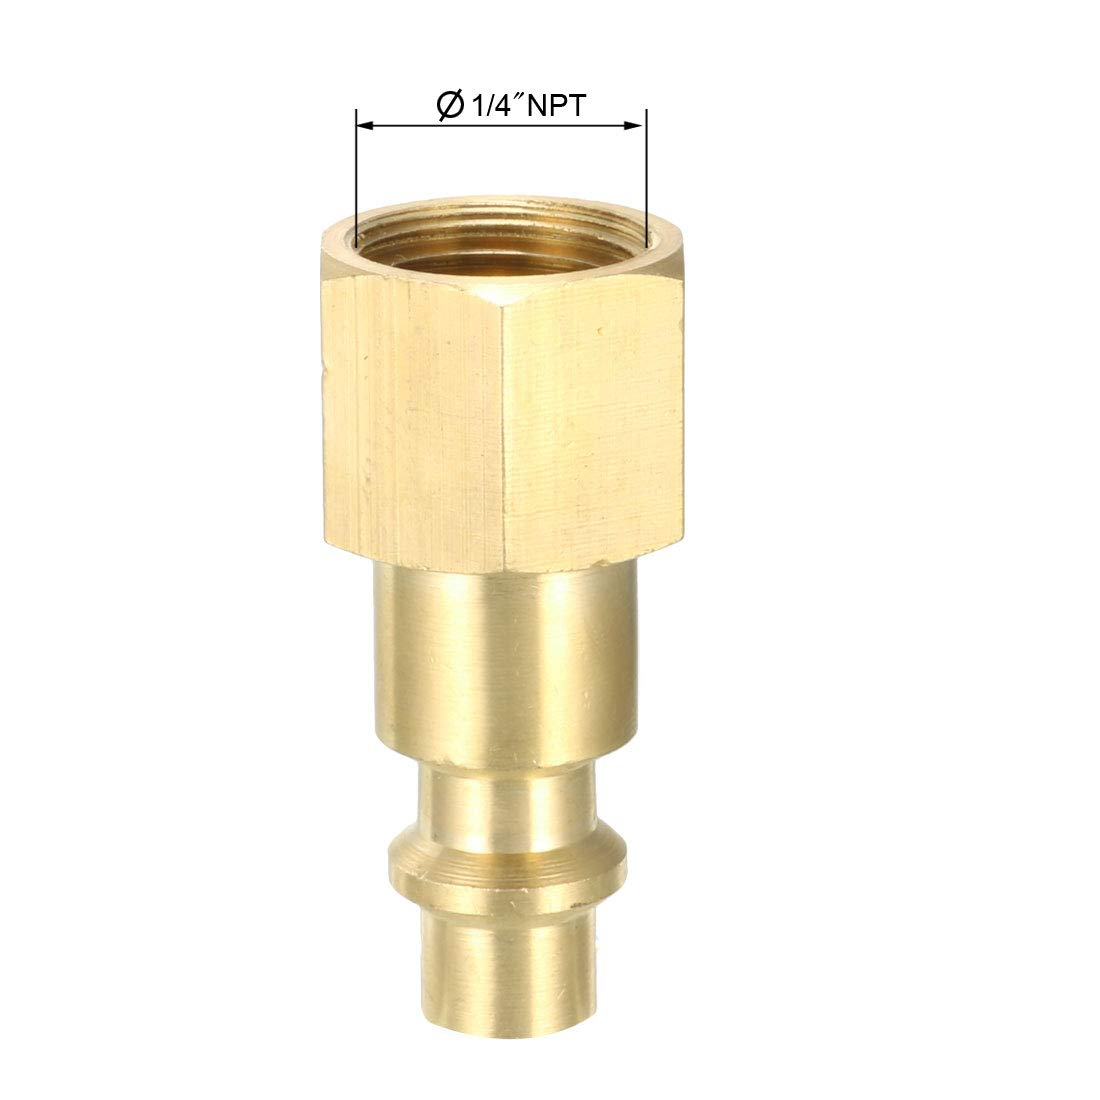 uxcell Brass Pipe Fitting Pack of 10 1//4 NPT x 1//4 NPT Male Pipe 1//4 NPT x 1//4 NPT Male Pipe Hex Nipple